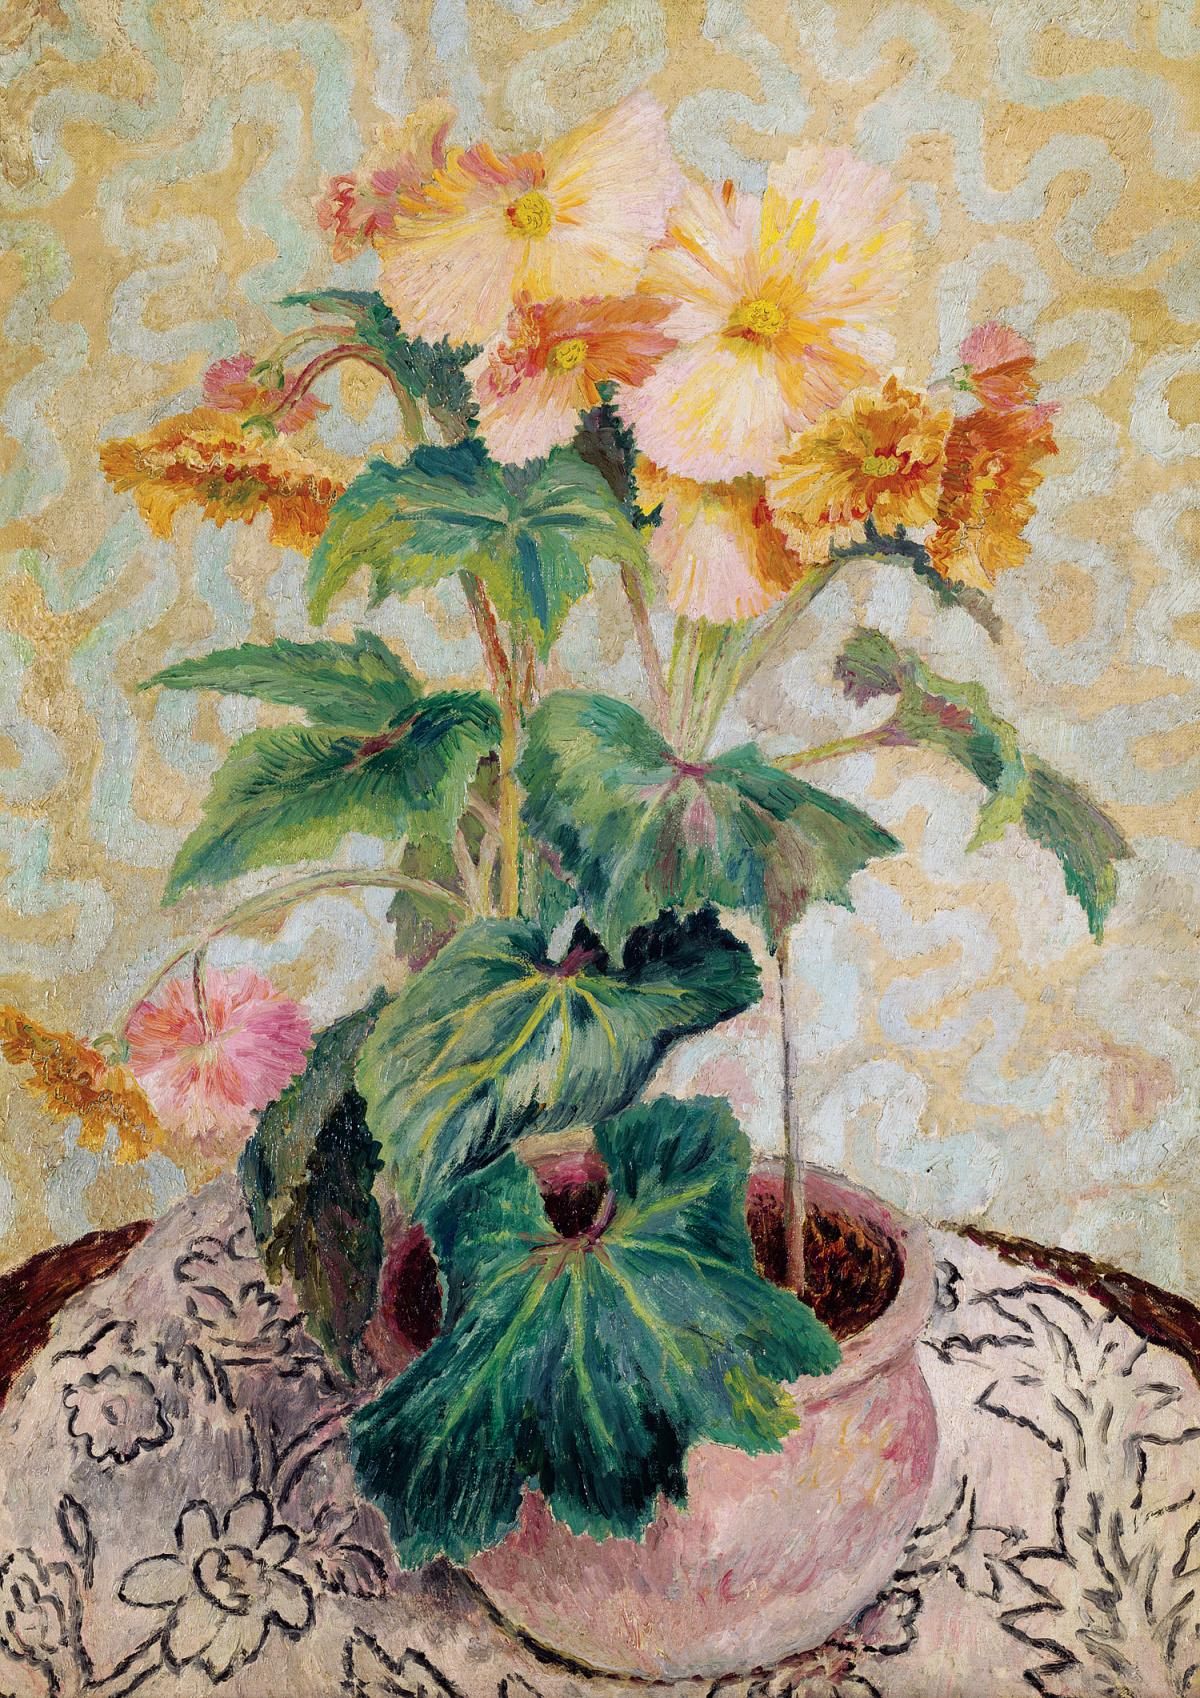 A bouquet of yellow begonias in a round clay pot, sitting on a table covered with a black and white floral tablecloth